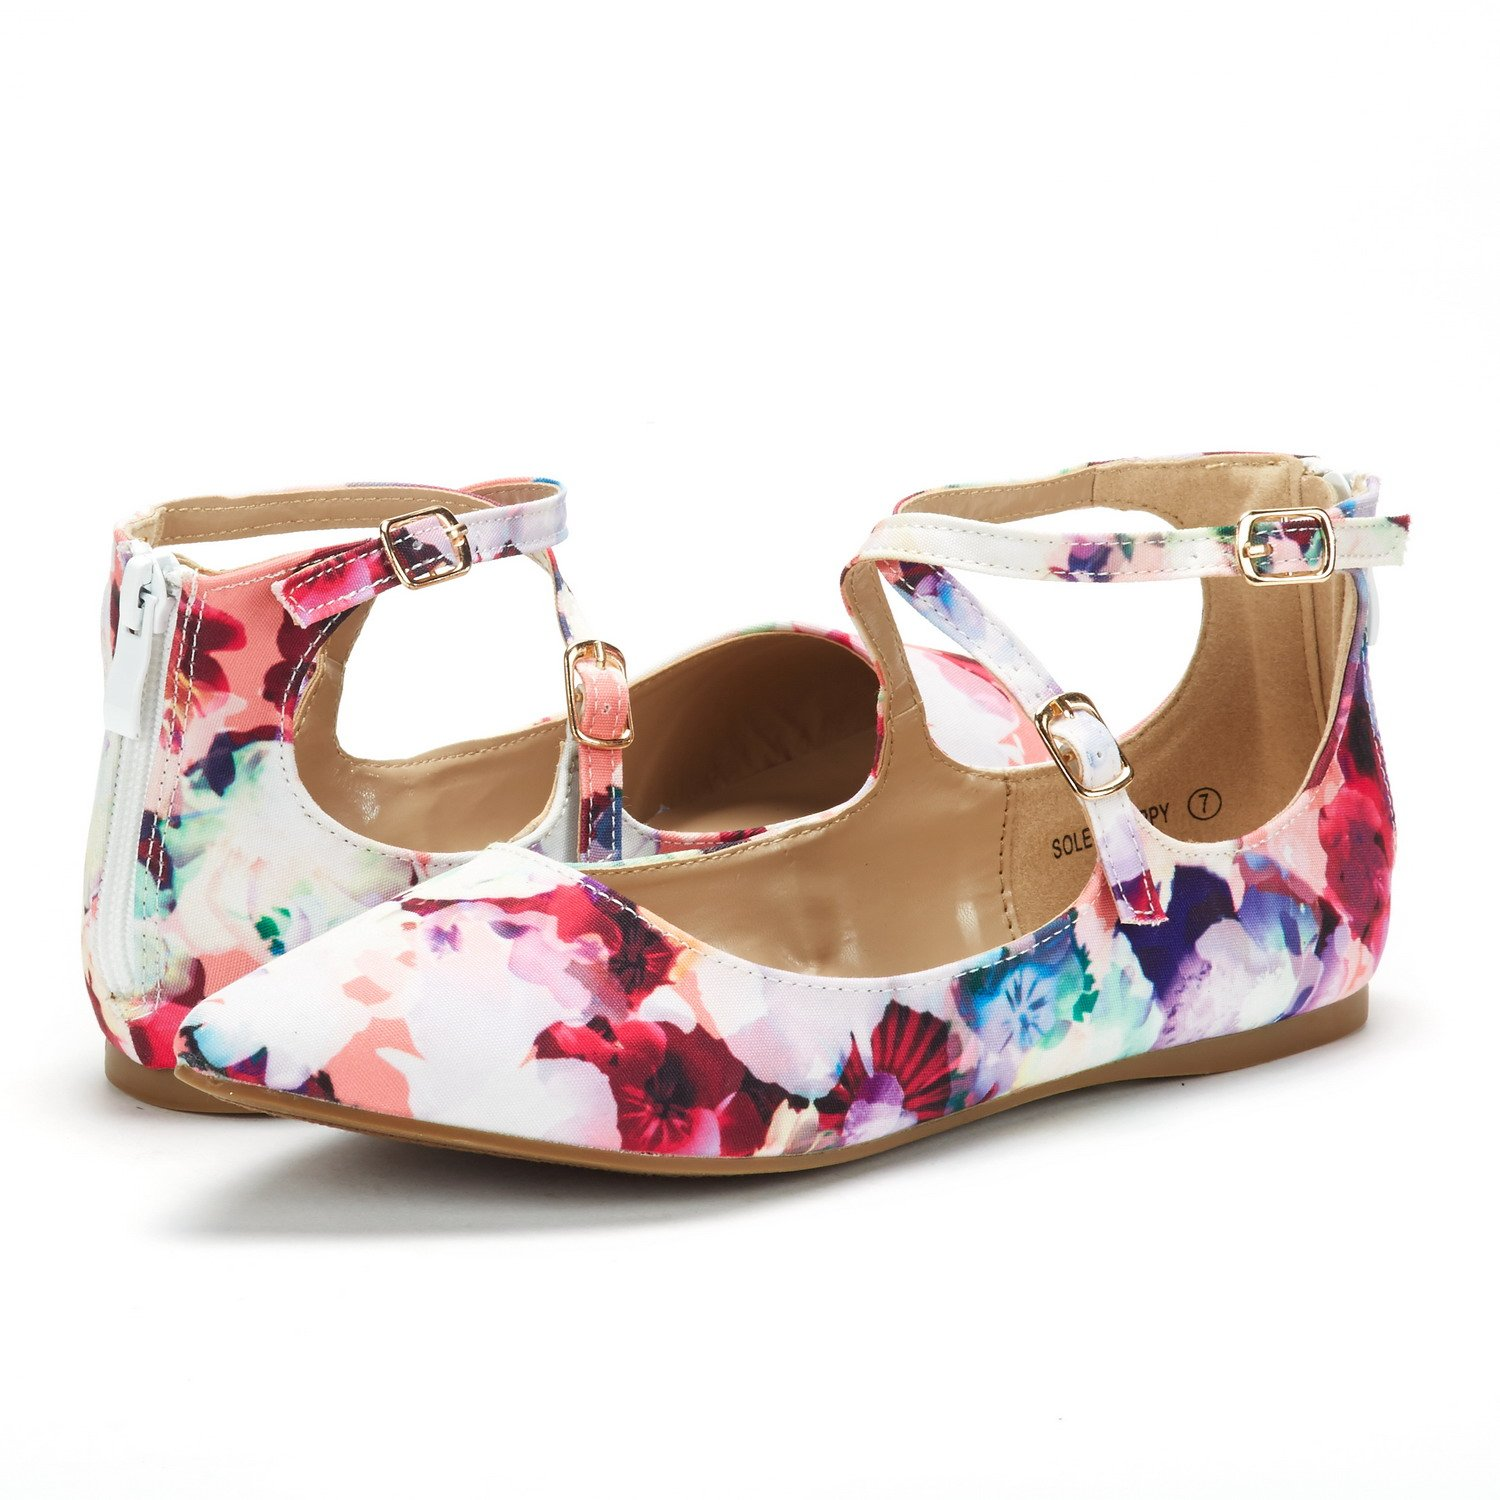 DREAM PAIRS Womens Ankle Straps Marry Jane Ballerina Flat Shoes